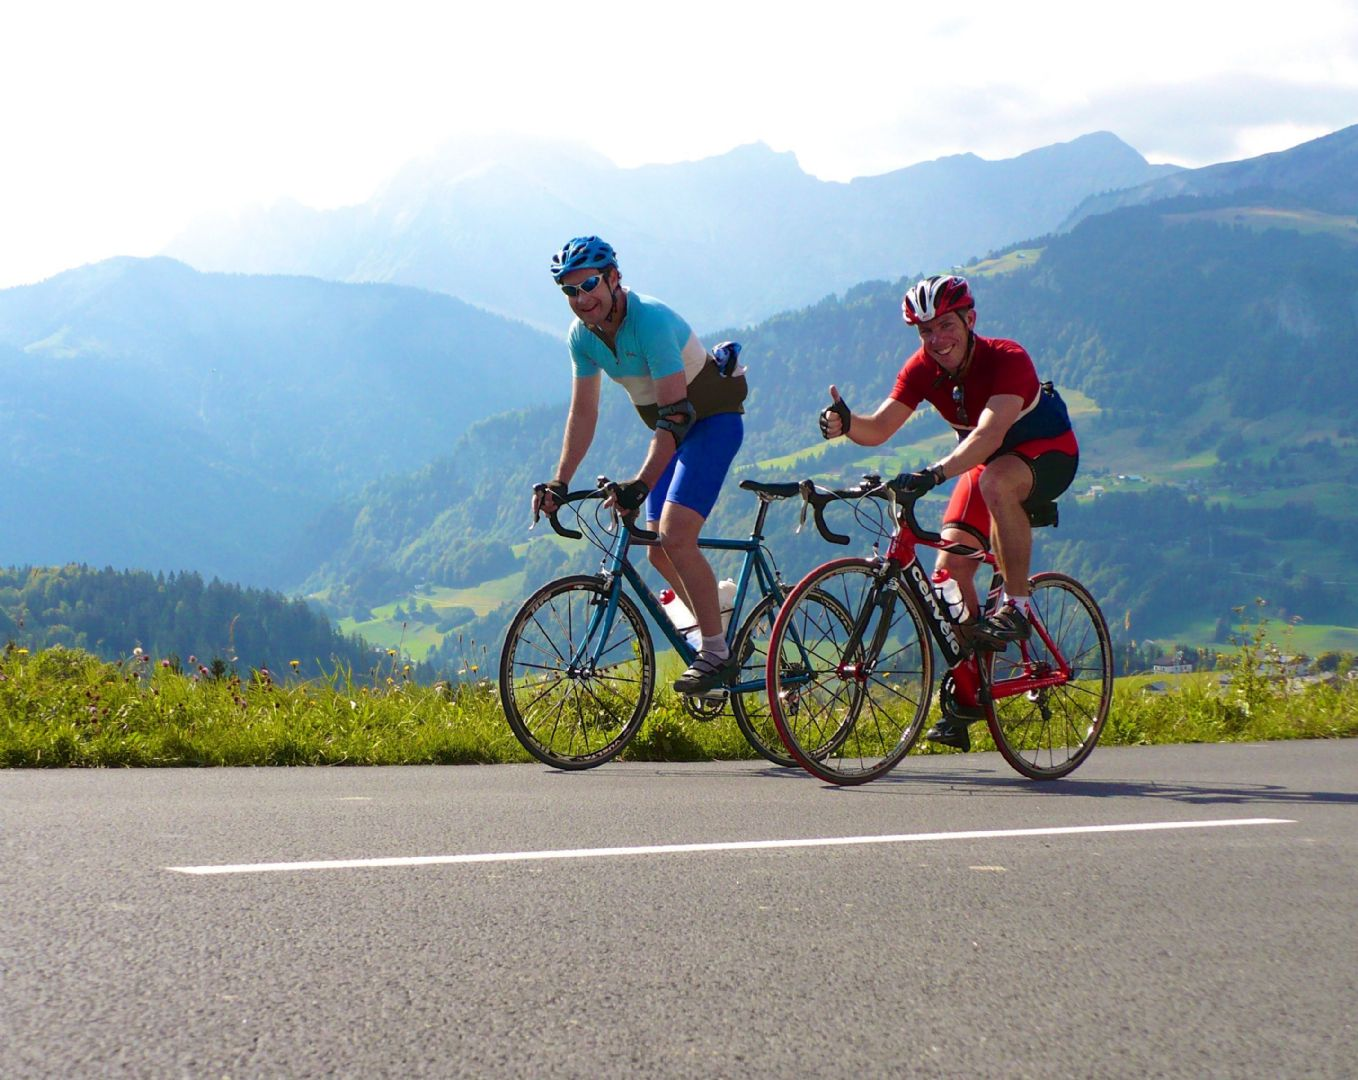 France Alps Classic Road Cycling 5.jpg - France - Classic Alps Passes - Alpine Introduction - Guided Road Cycling Holiday - Road Cycling